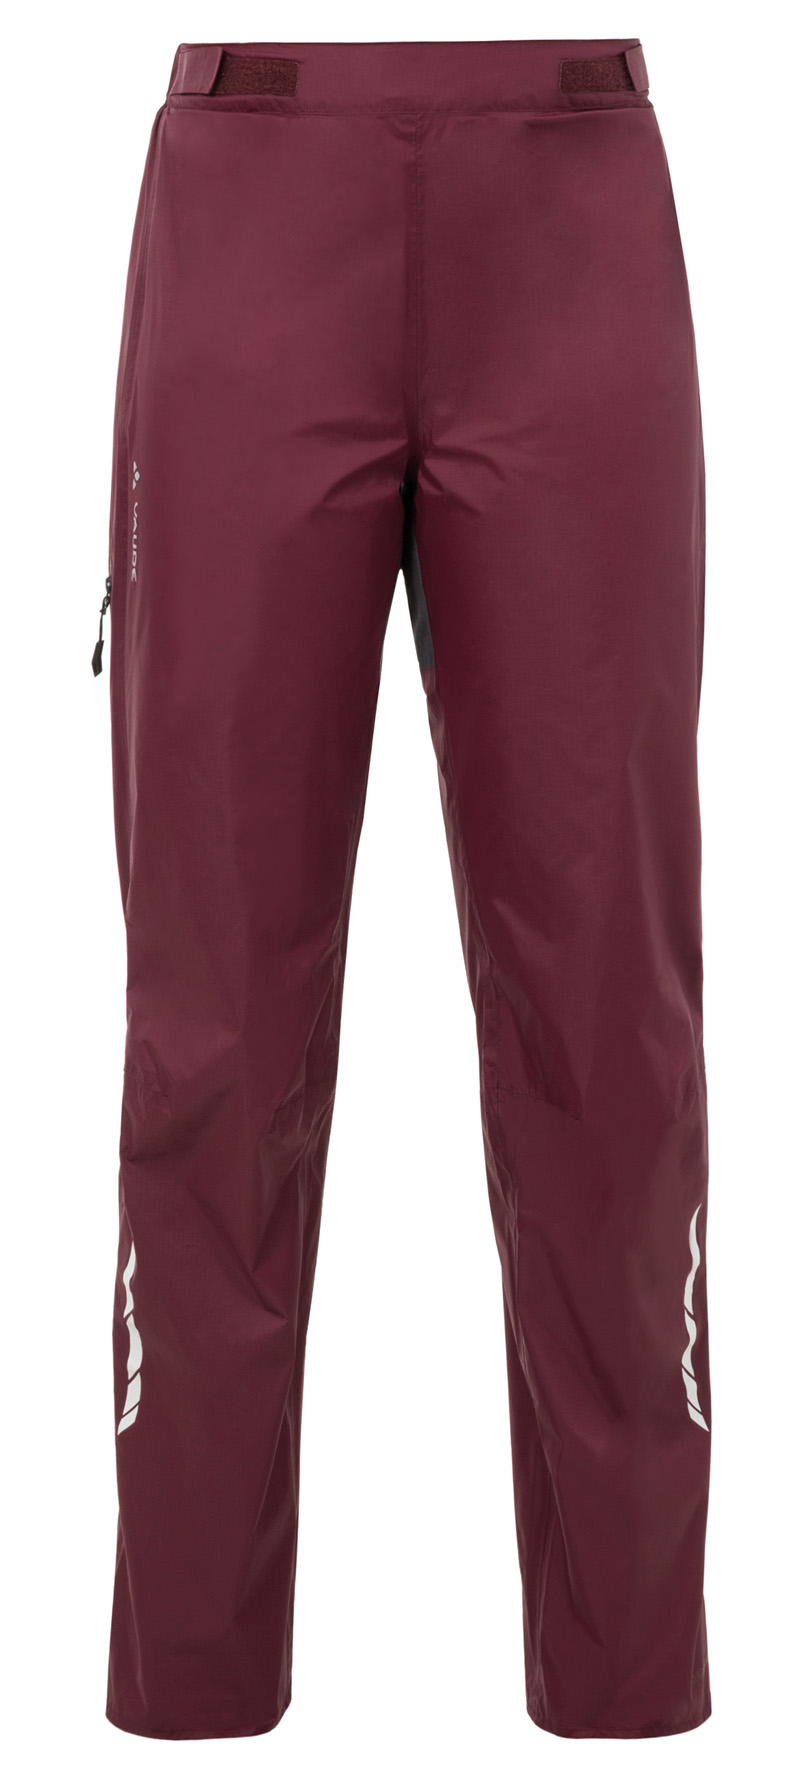 VAUDE Women´s Tremalzo Rain Pants claret red Größe 34 - schneider-sports